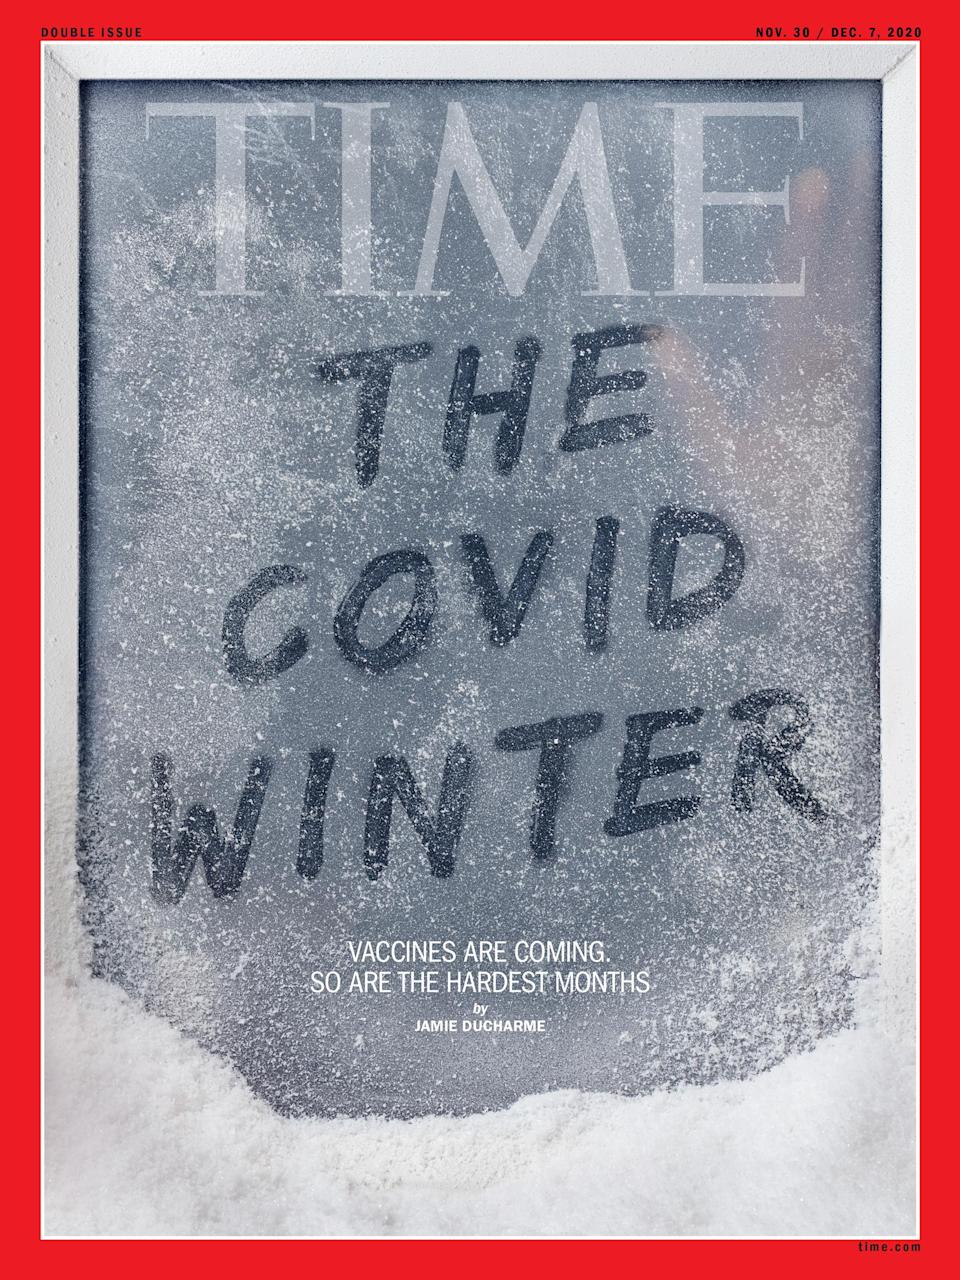 The Covid Winter Time International Magazine Europe cover